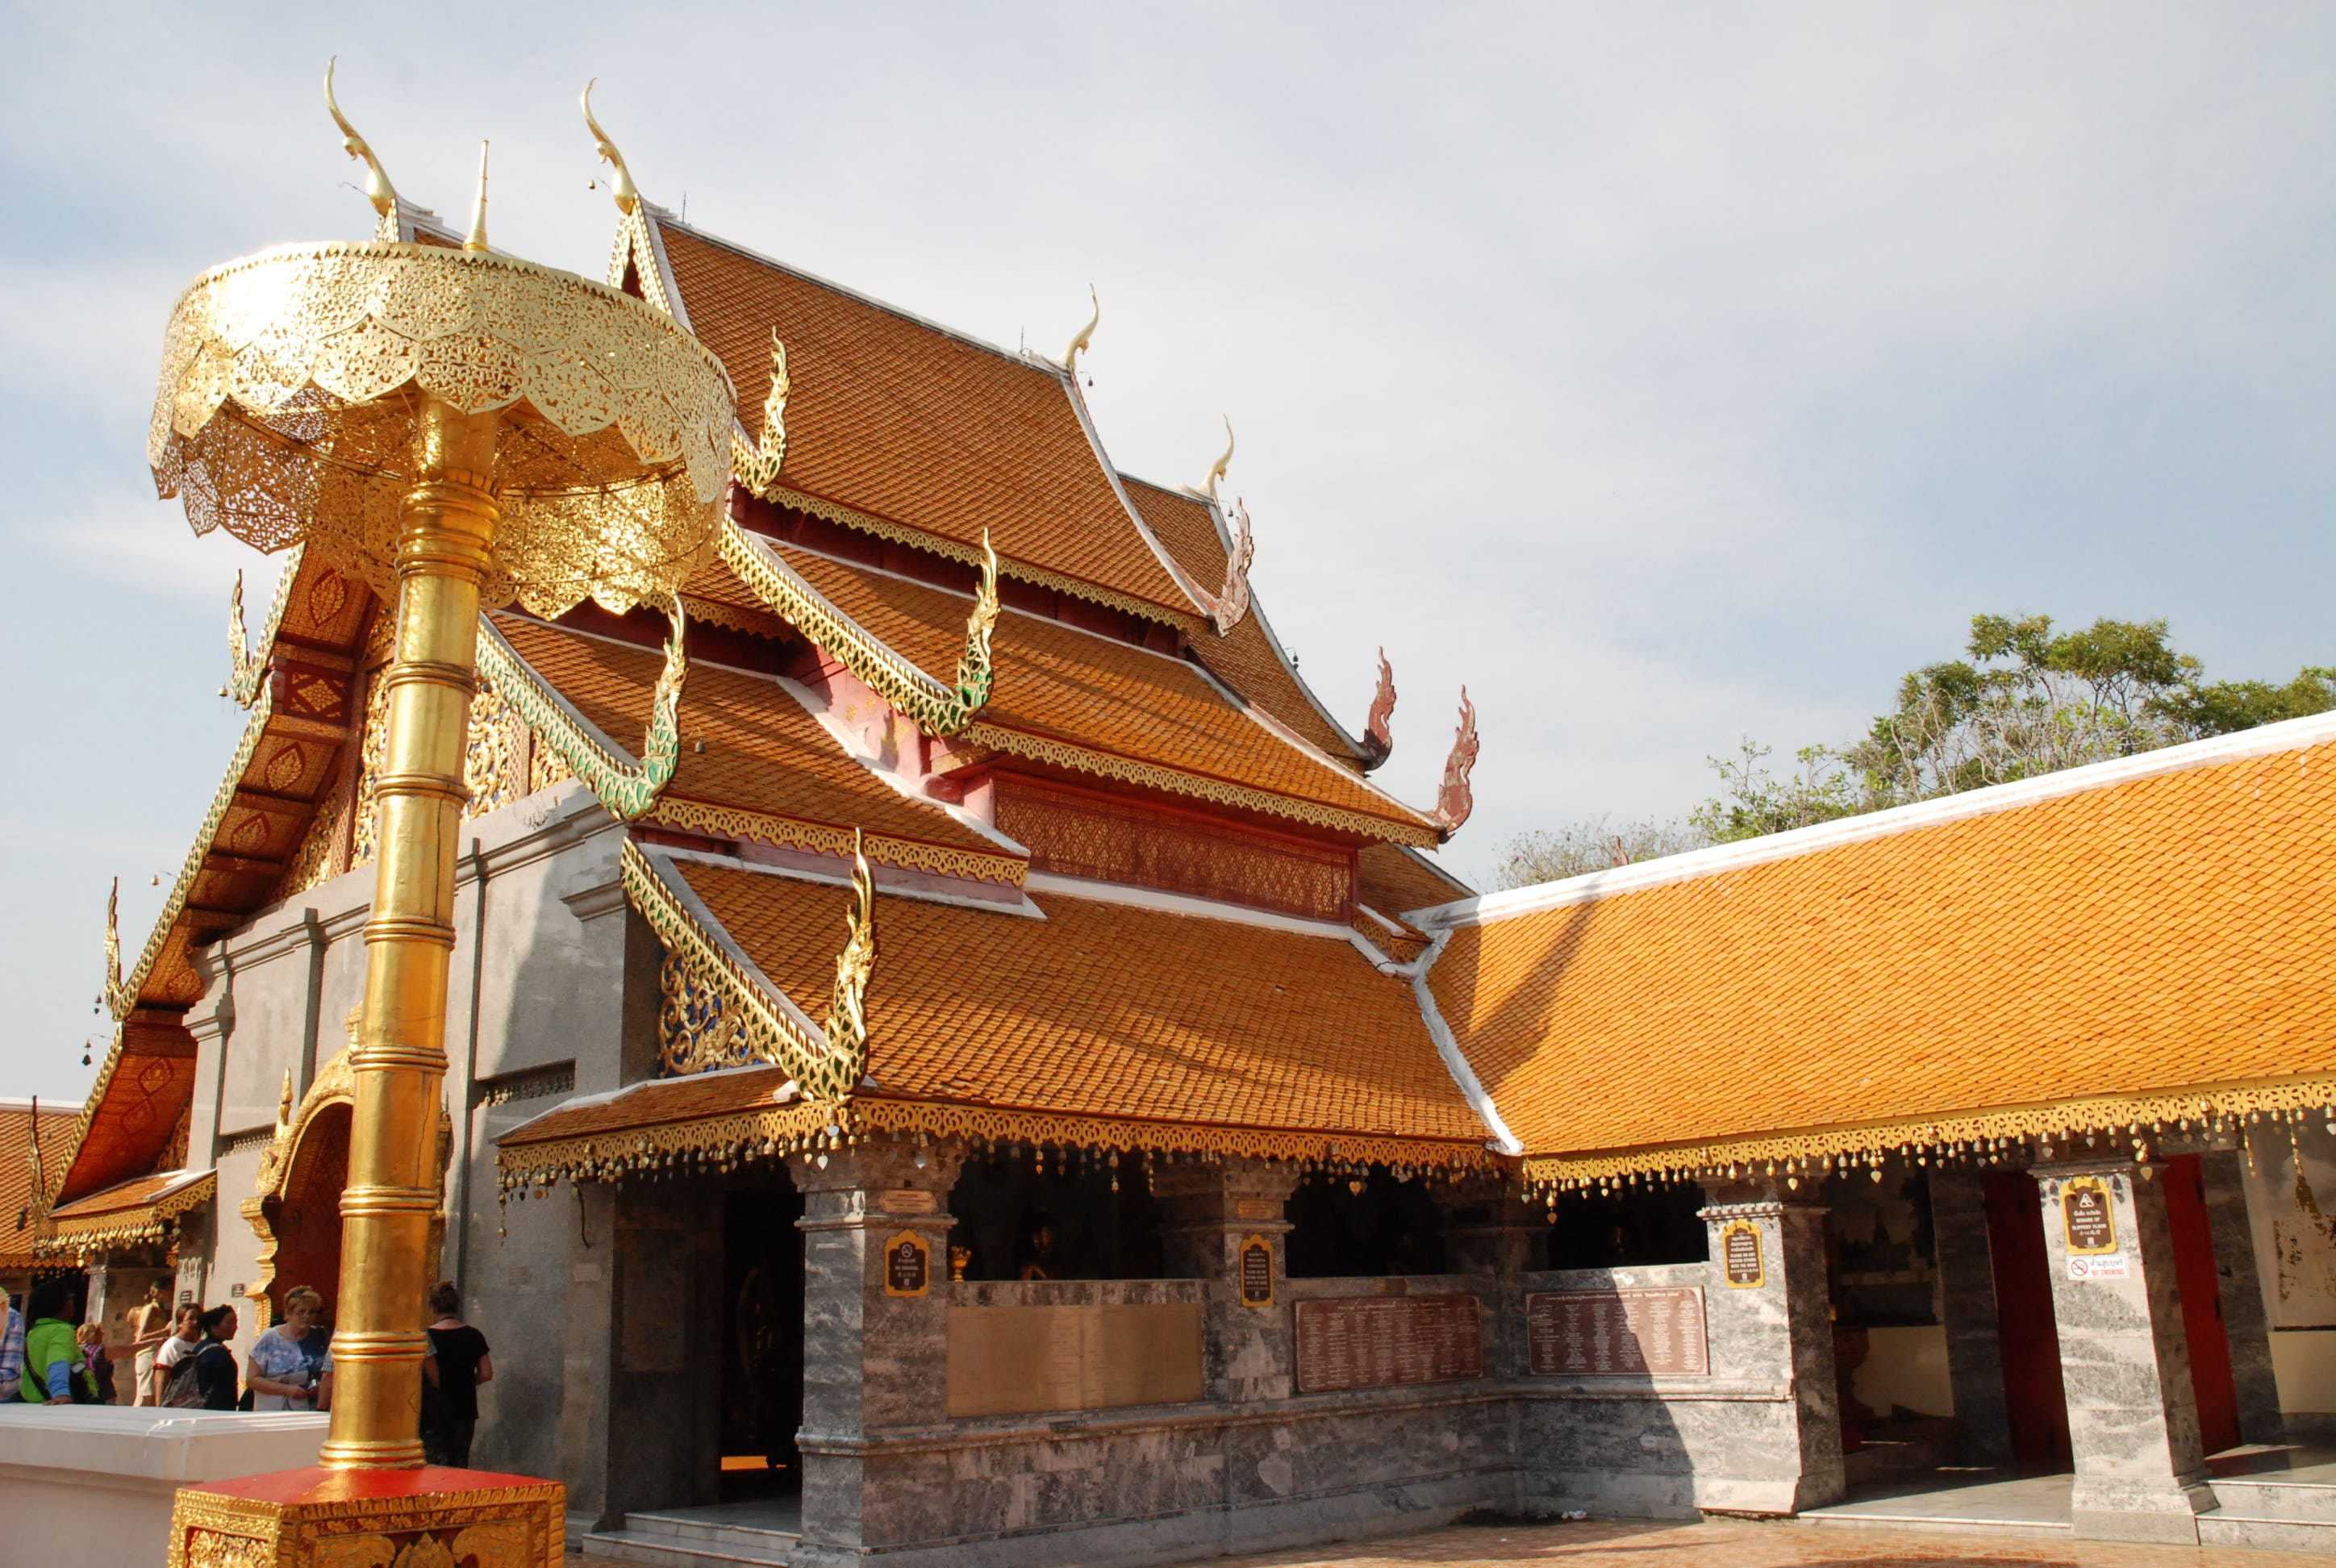 Chiang Mai is home to more than 300 'Wats' scattered throughout the city